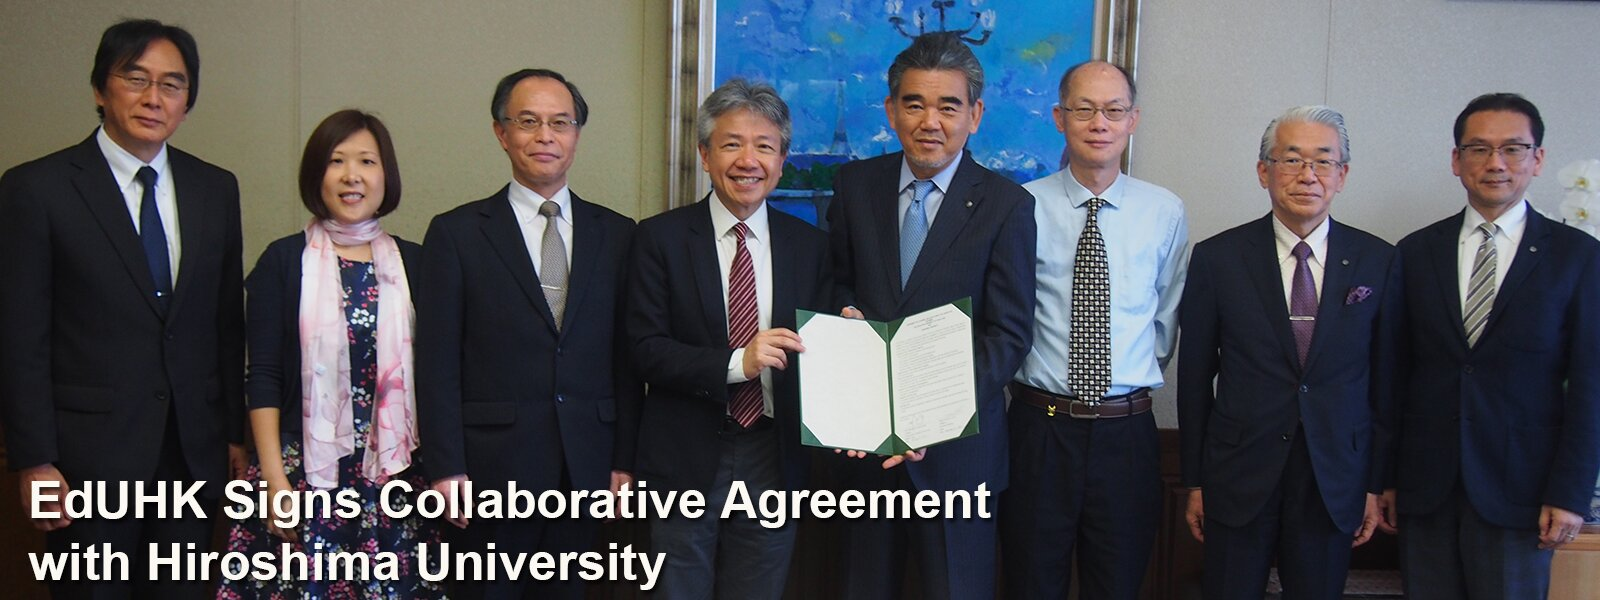 EdUHK Signs Collaborative Agreement with Hiroshima University